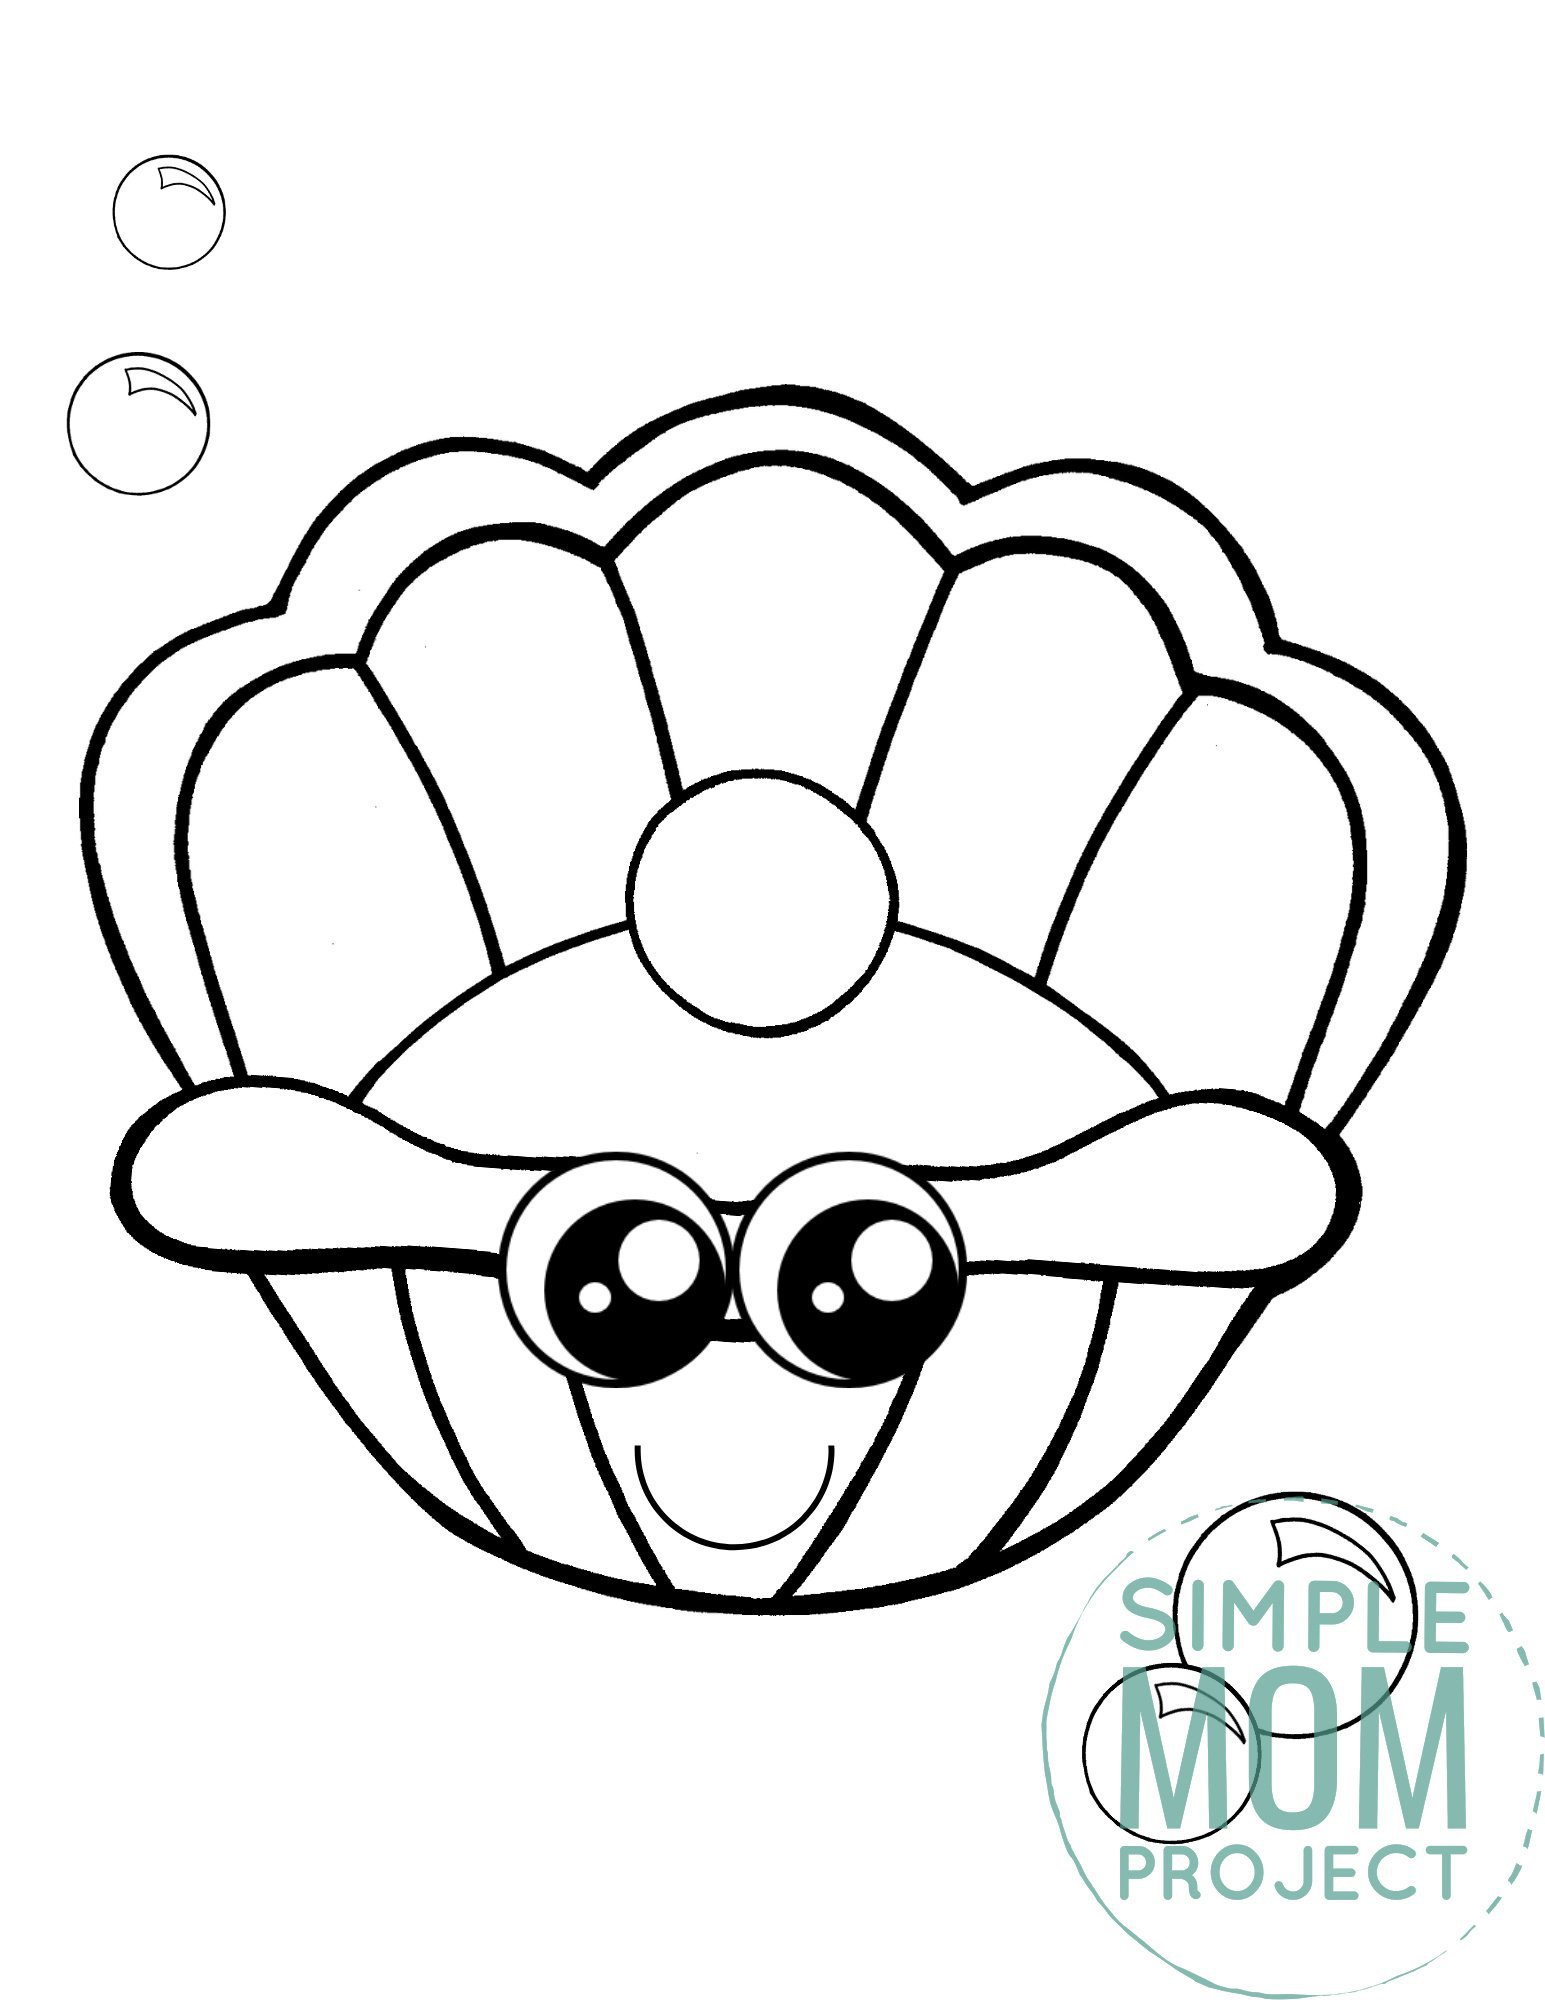 Printable Clam Shell Ocean Animal Coloring Page for Kids